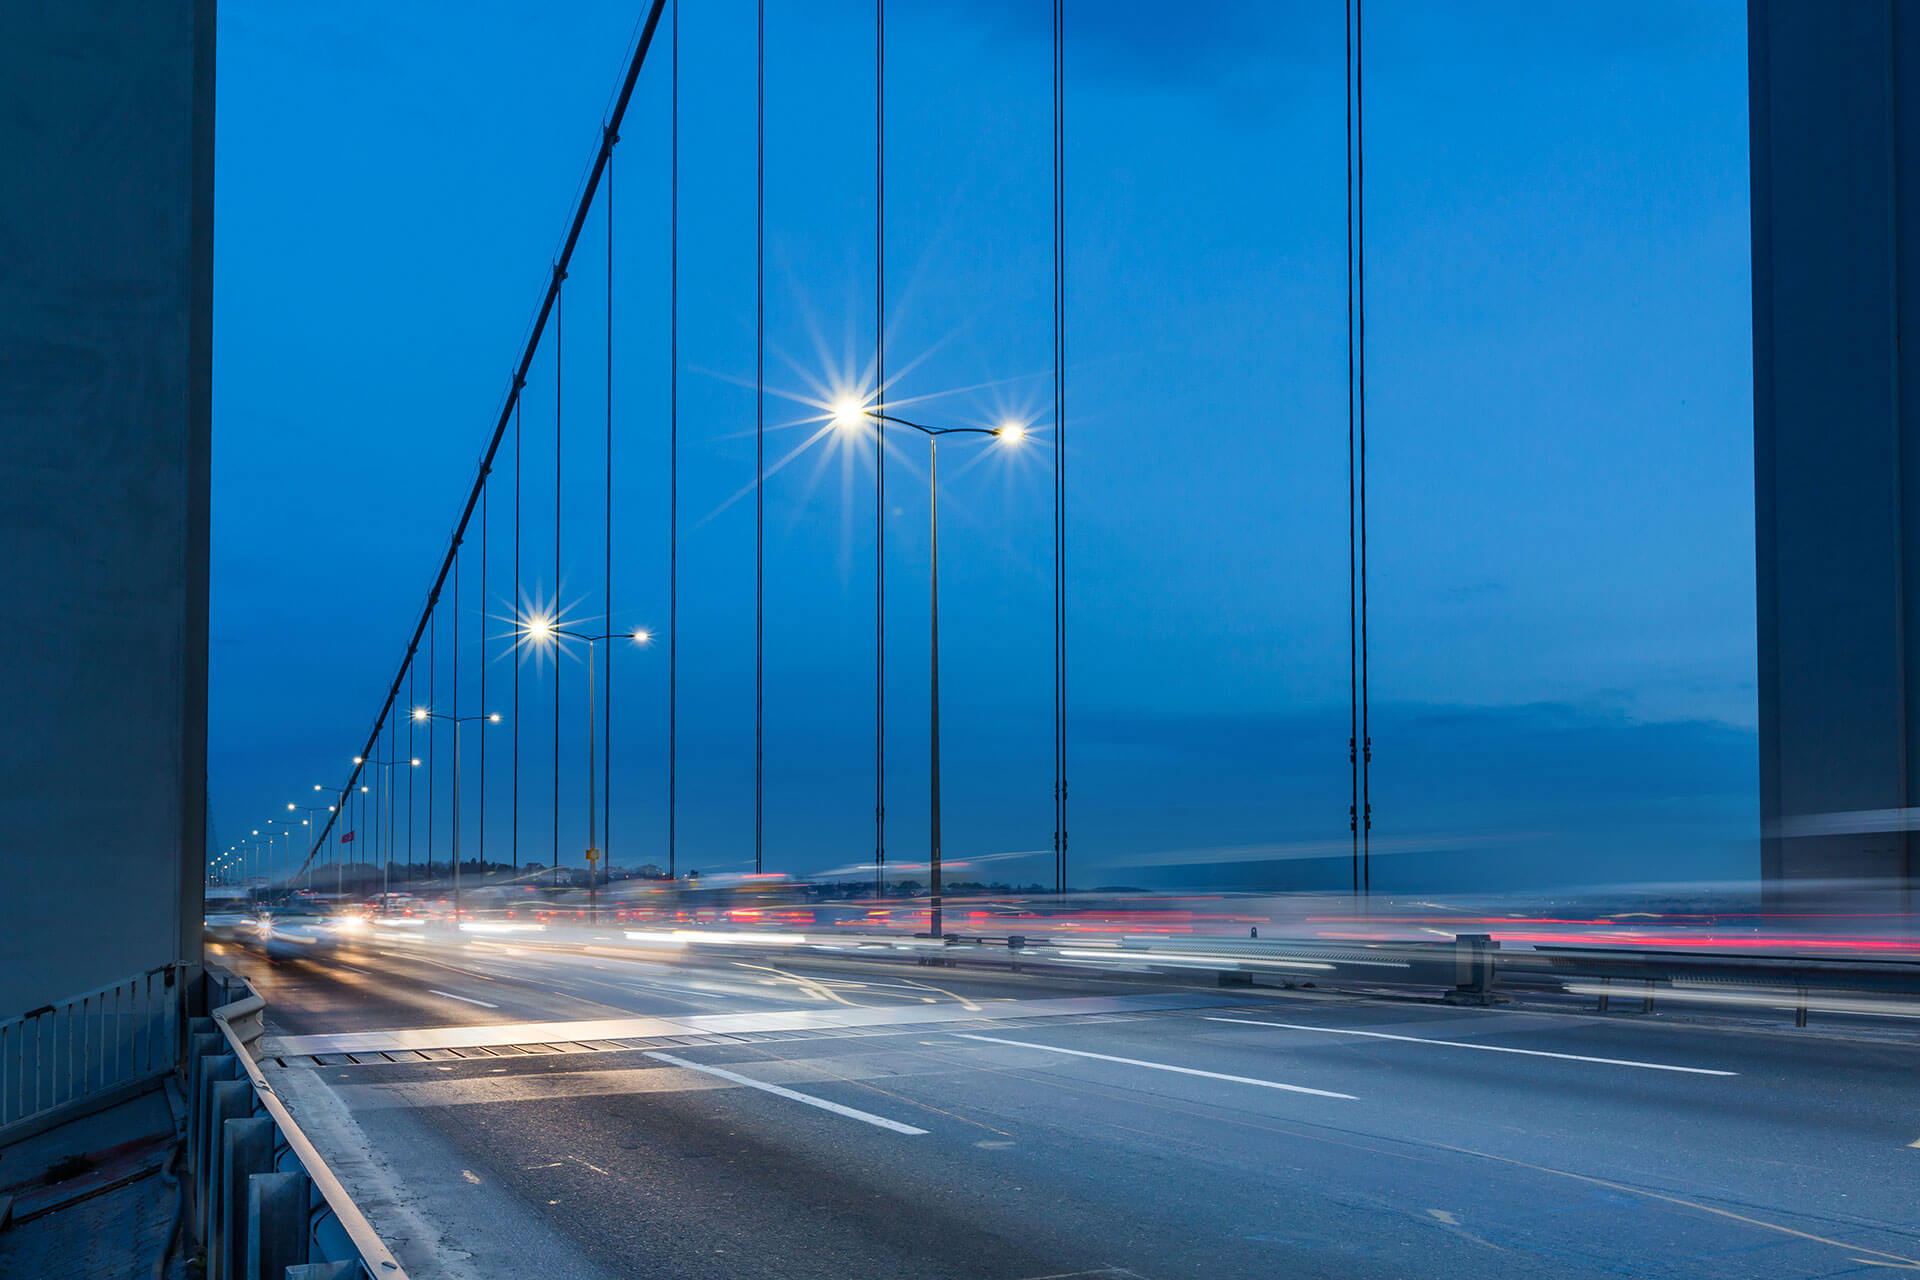 240 Teceo luminaires light Fatih Sultan Mehmet Bridge ensuring safety and cutting energy costs by 52%